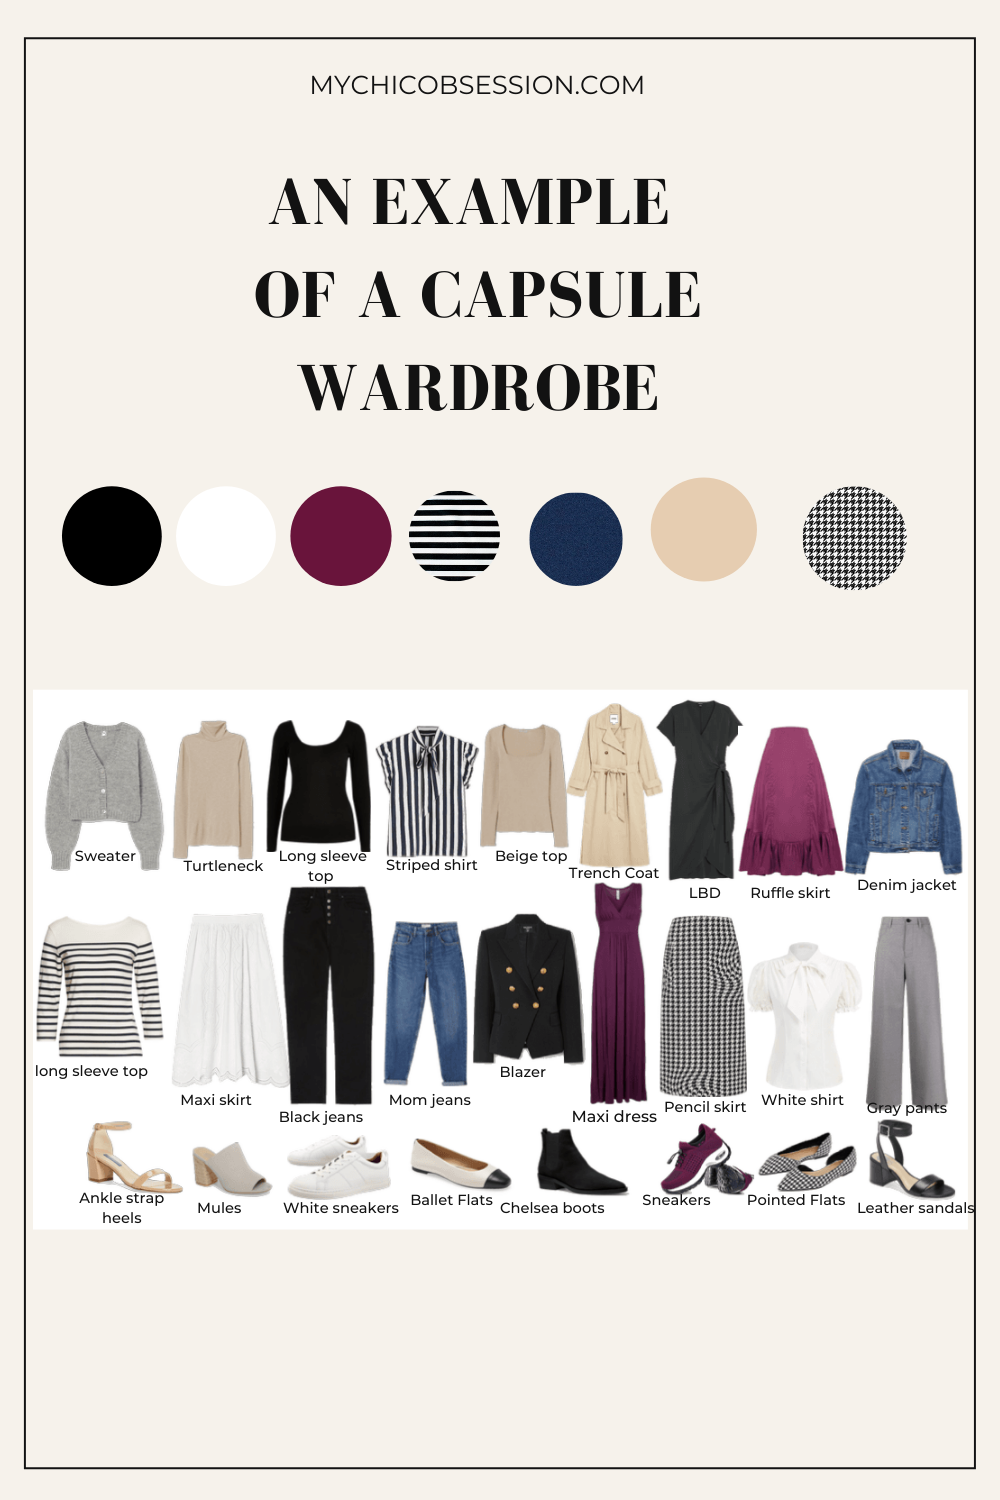 An example of a 26-piece capsule wardrobe